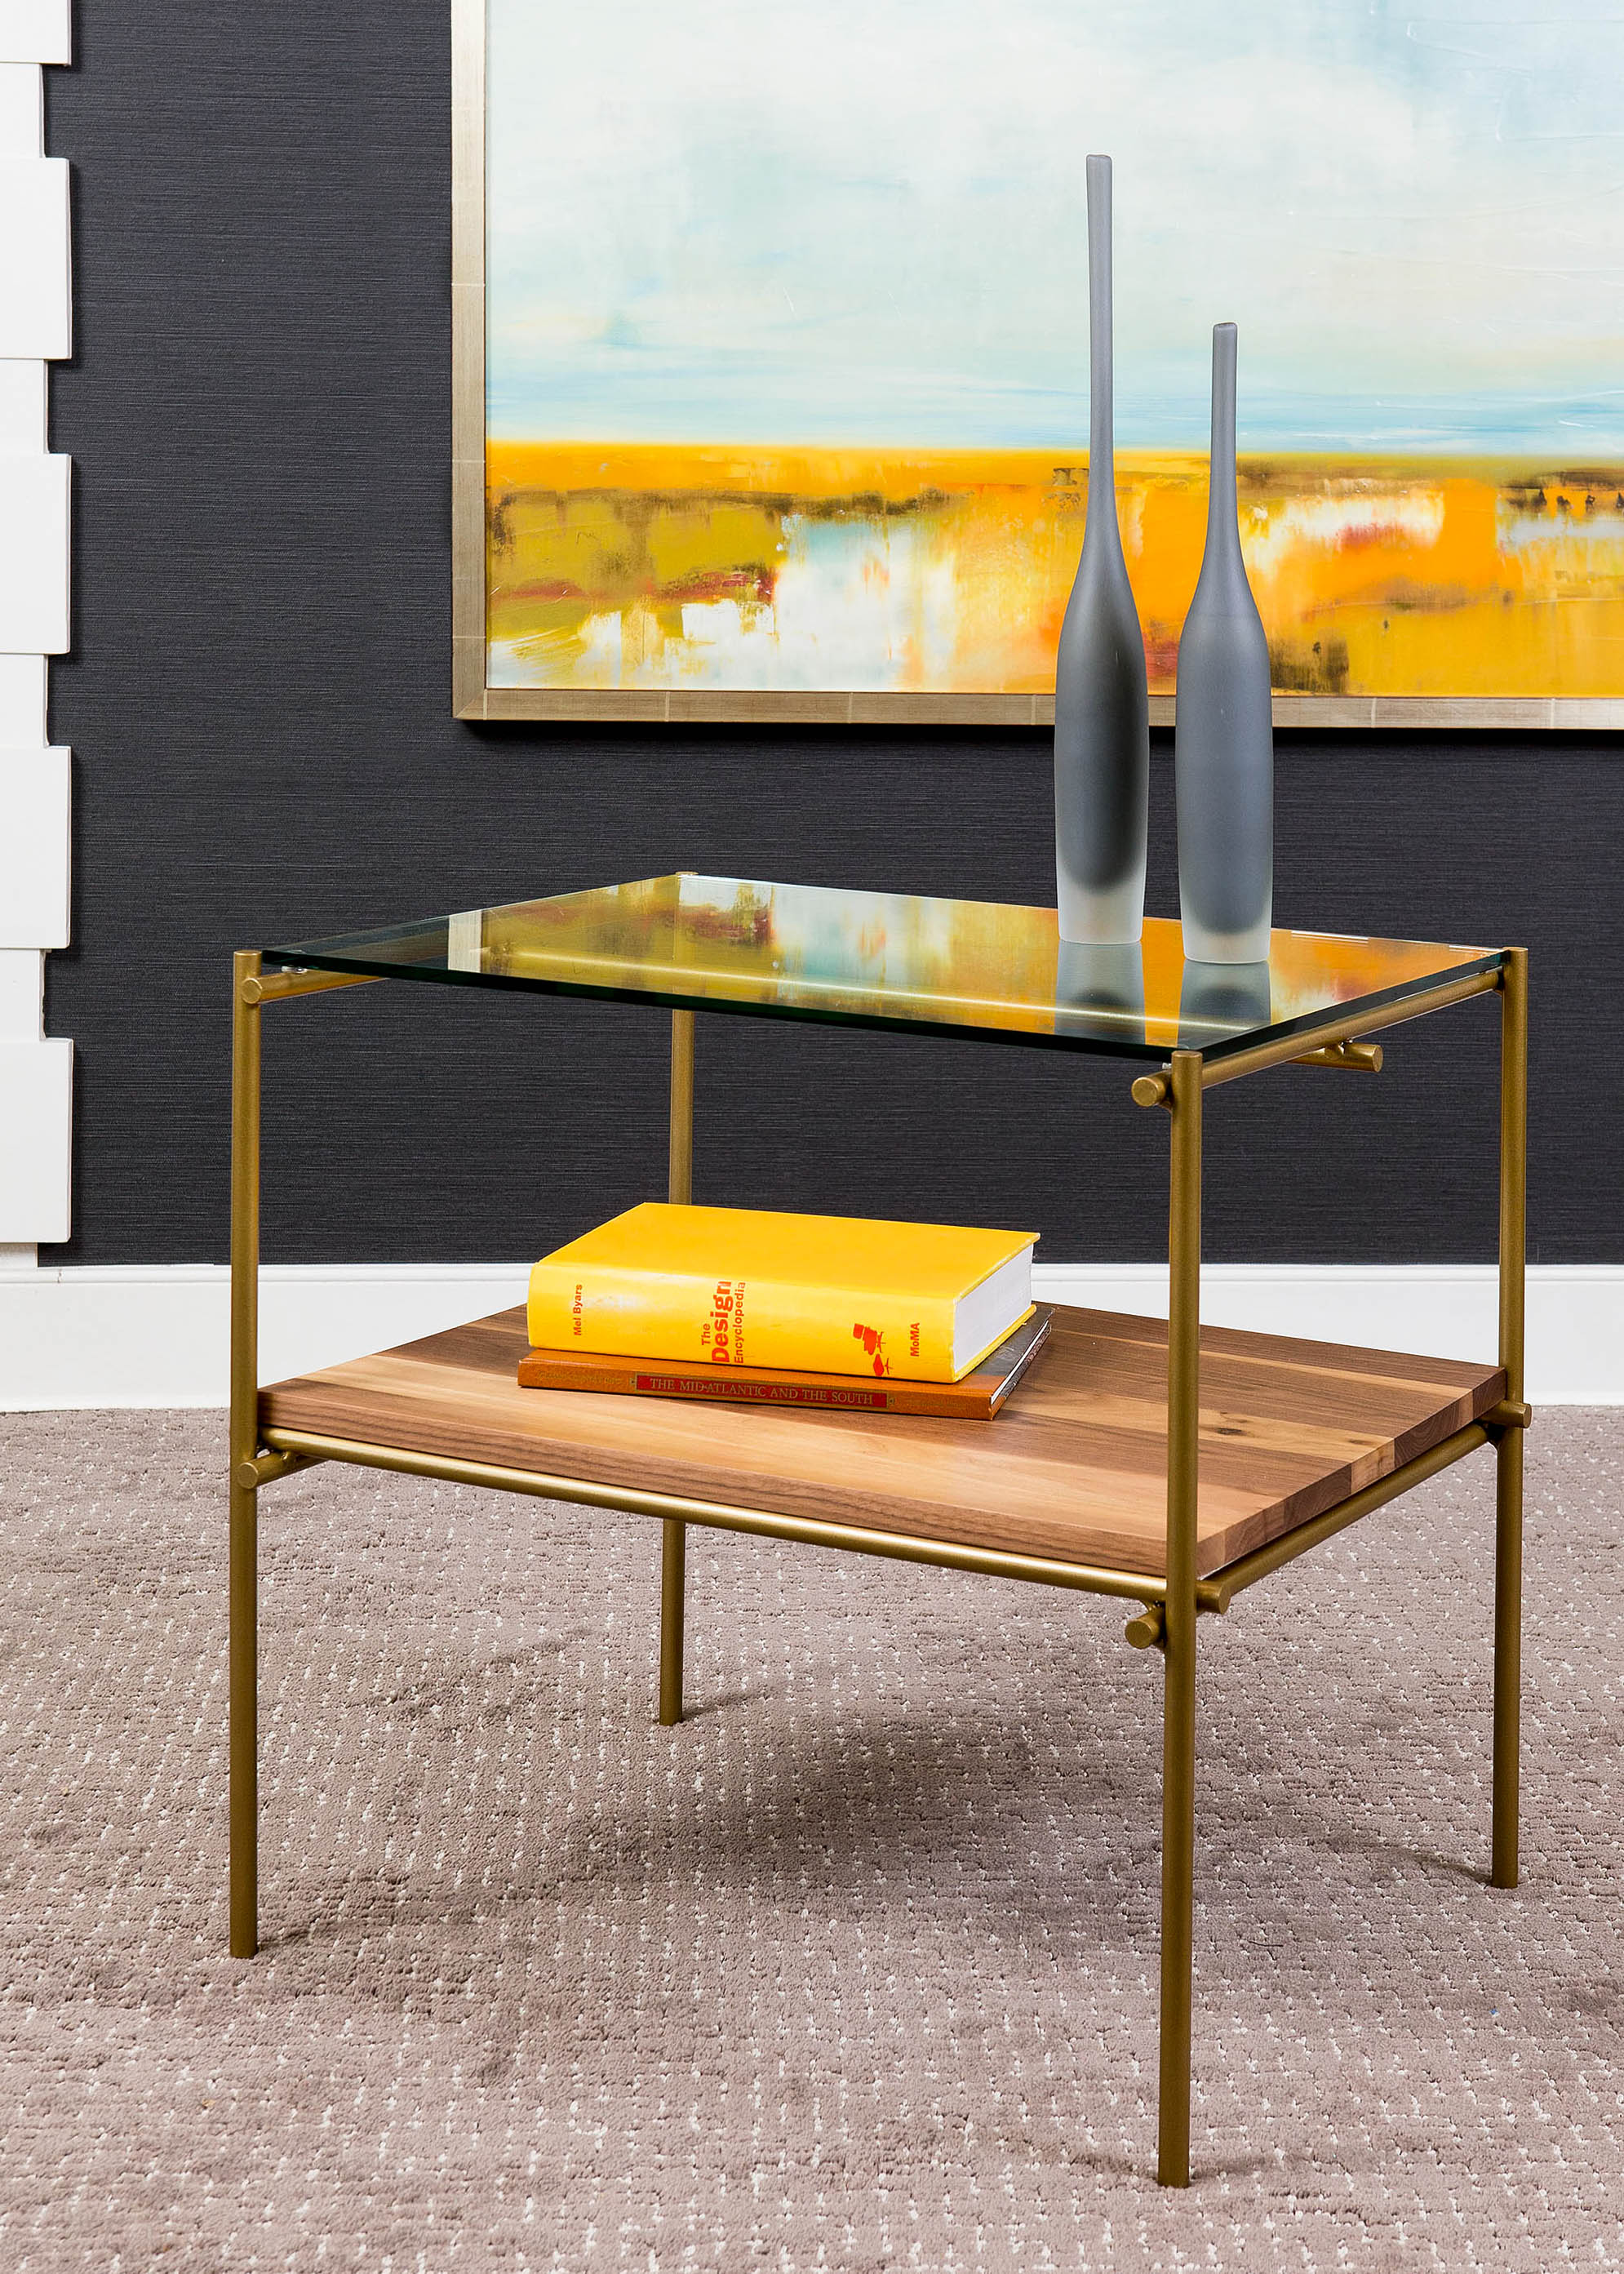 """""""It is not enough for a side table to be only functional. The silhouette and materials should add a spark of interest to your home. Our Katie table combines burnished gold, glass, and natural walnut to embody a modern, organic elegance."""" - Paul Miller, Lookbook 2019"""